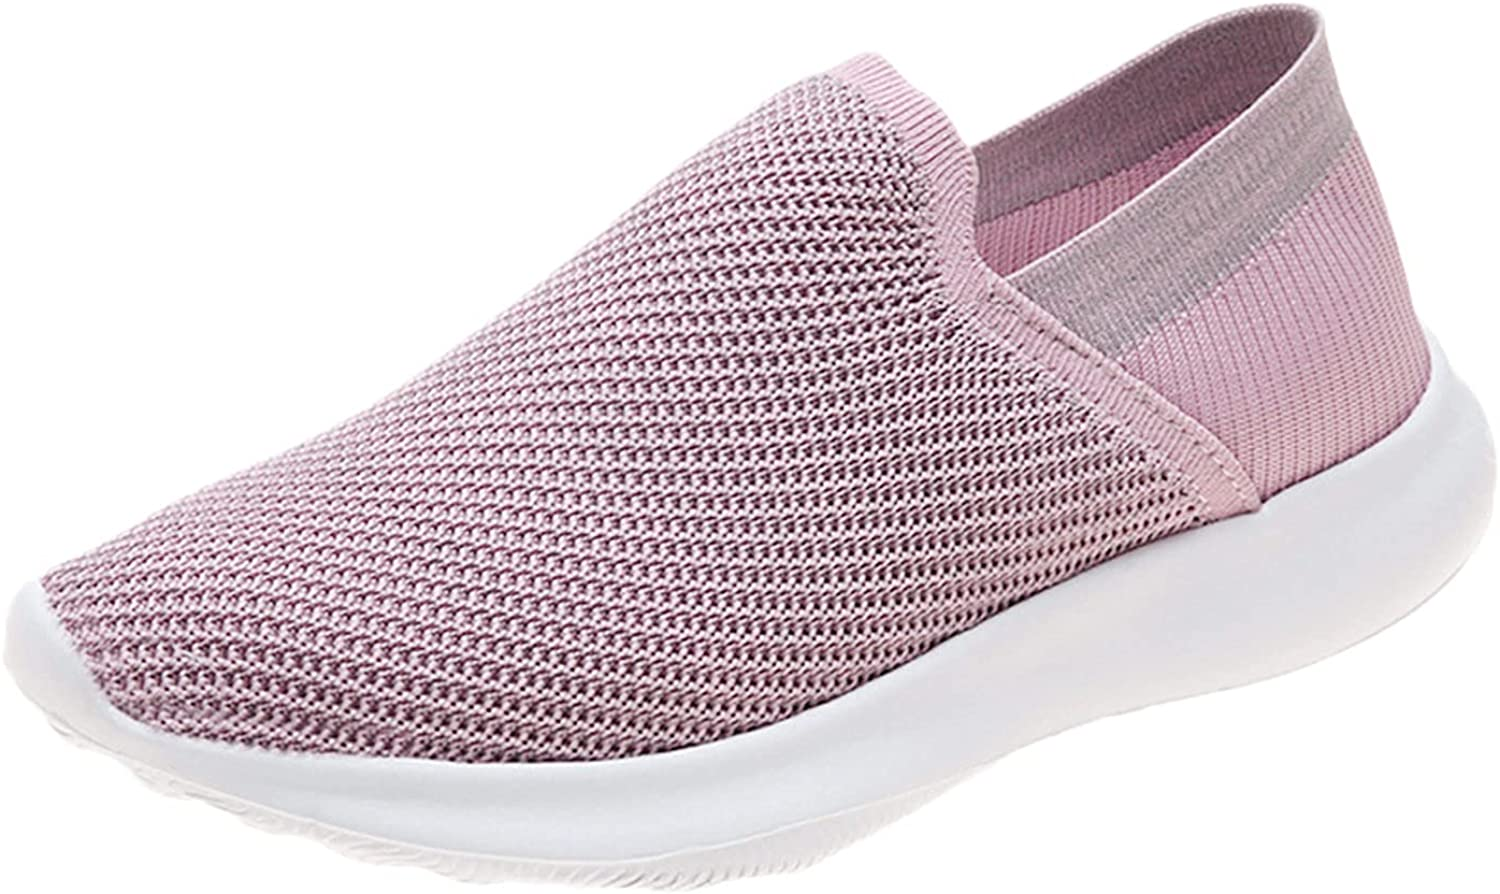 SCIHTE Walking Shoes for Woman Comfortable Slip on Sock Sneakers Lightweight Breathable Mesh Tennis Athletic Shoe